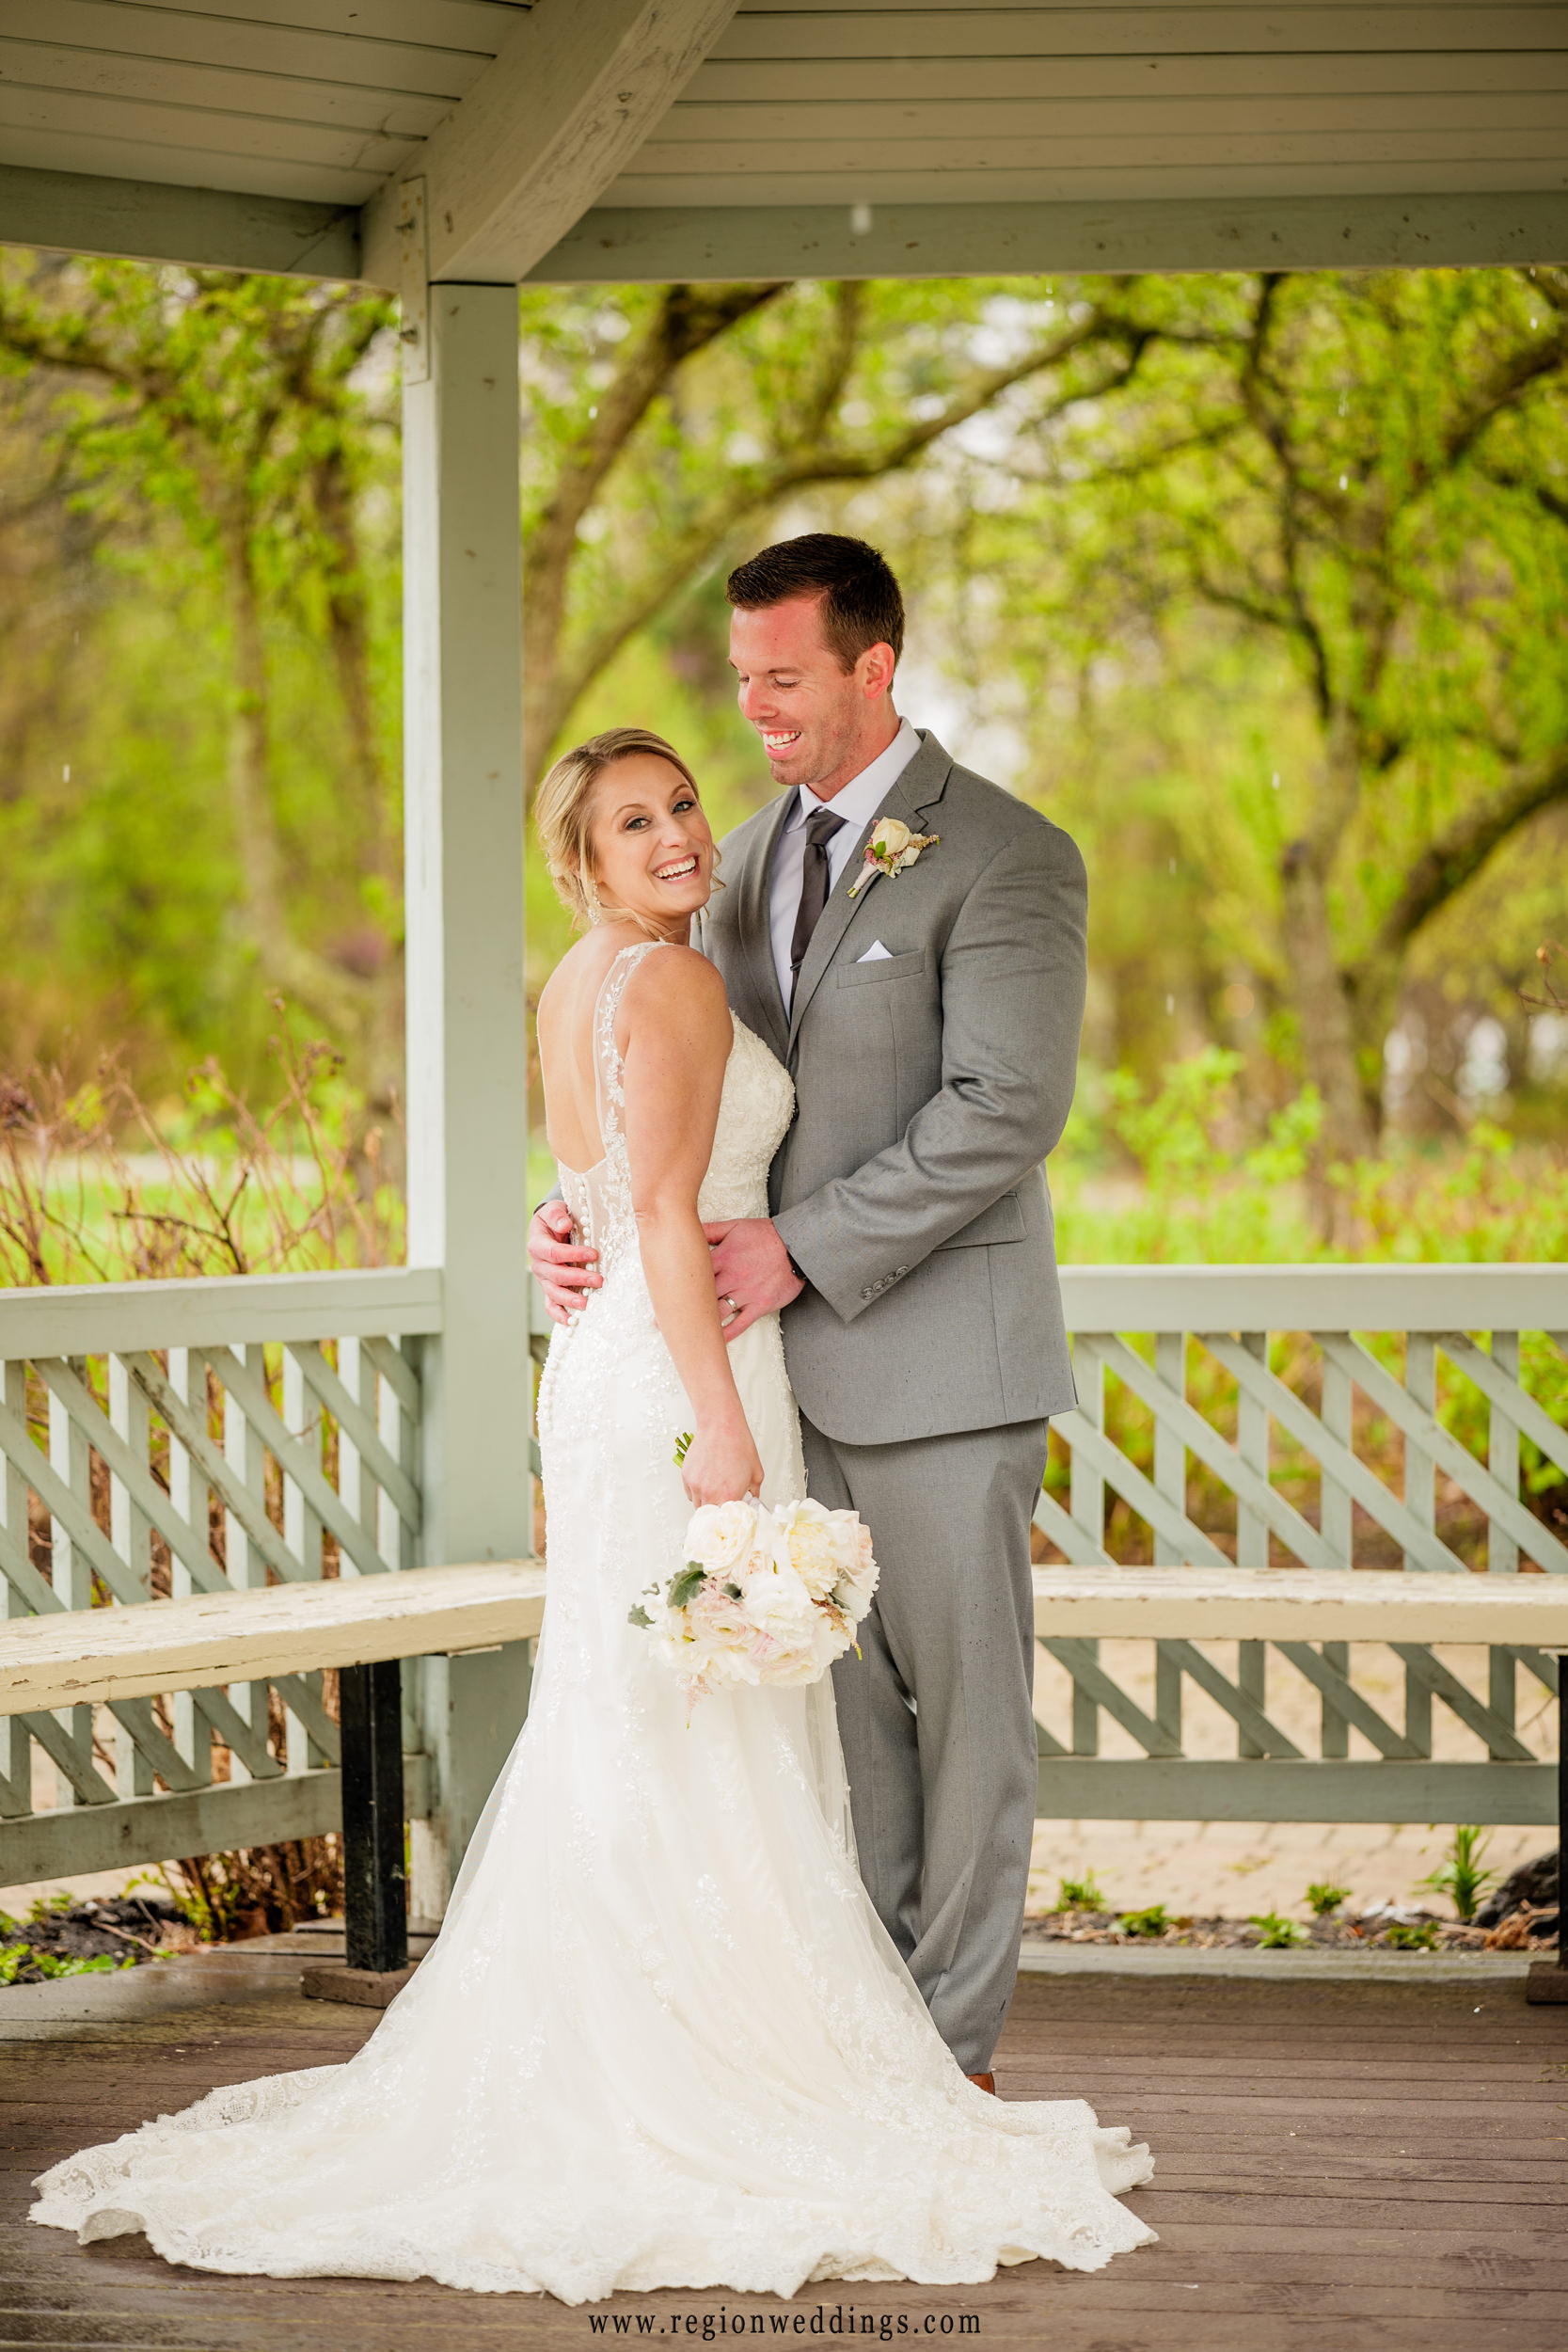 Bride and groom share a laugh underneath the gazebo during their Spring wedding in late April.